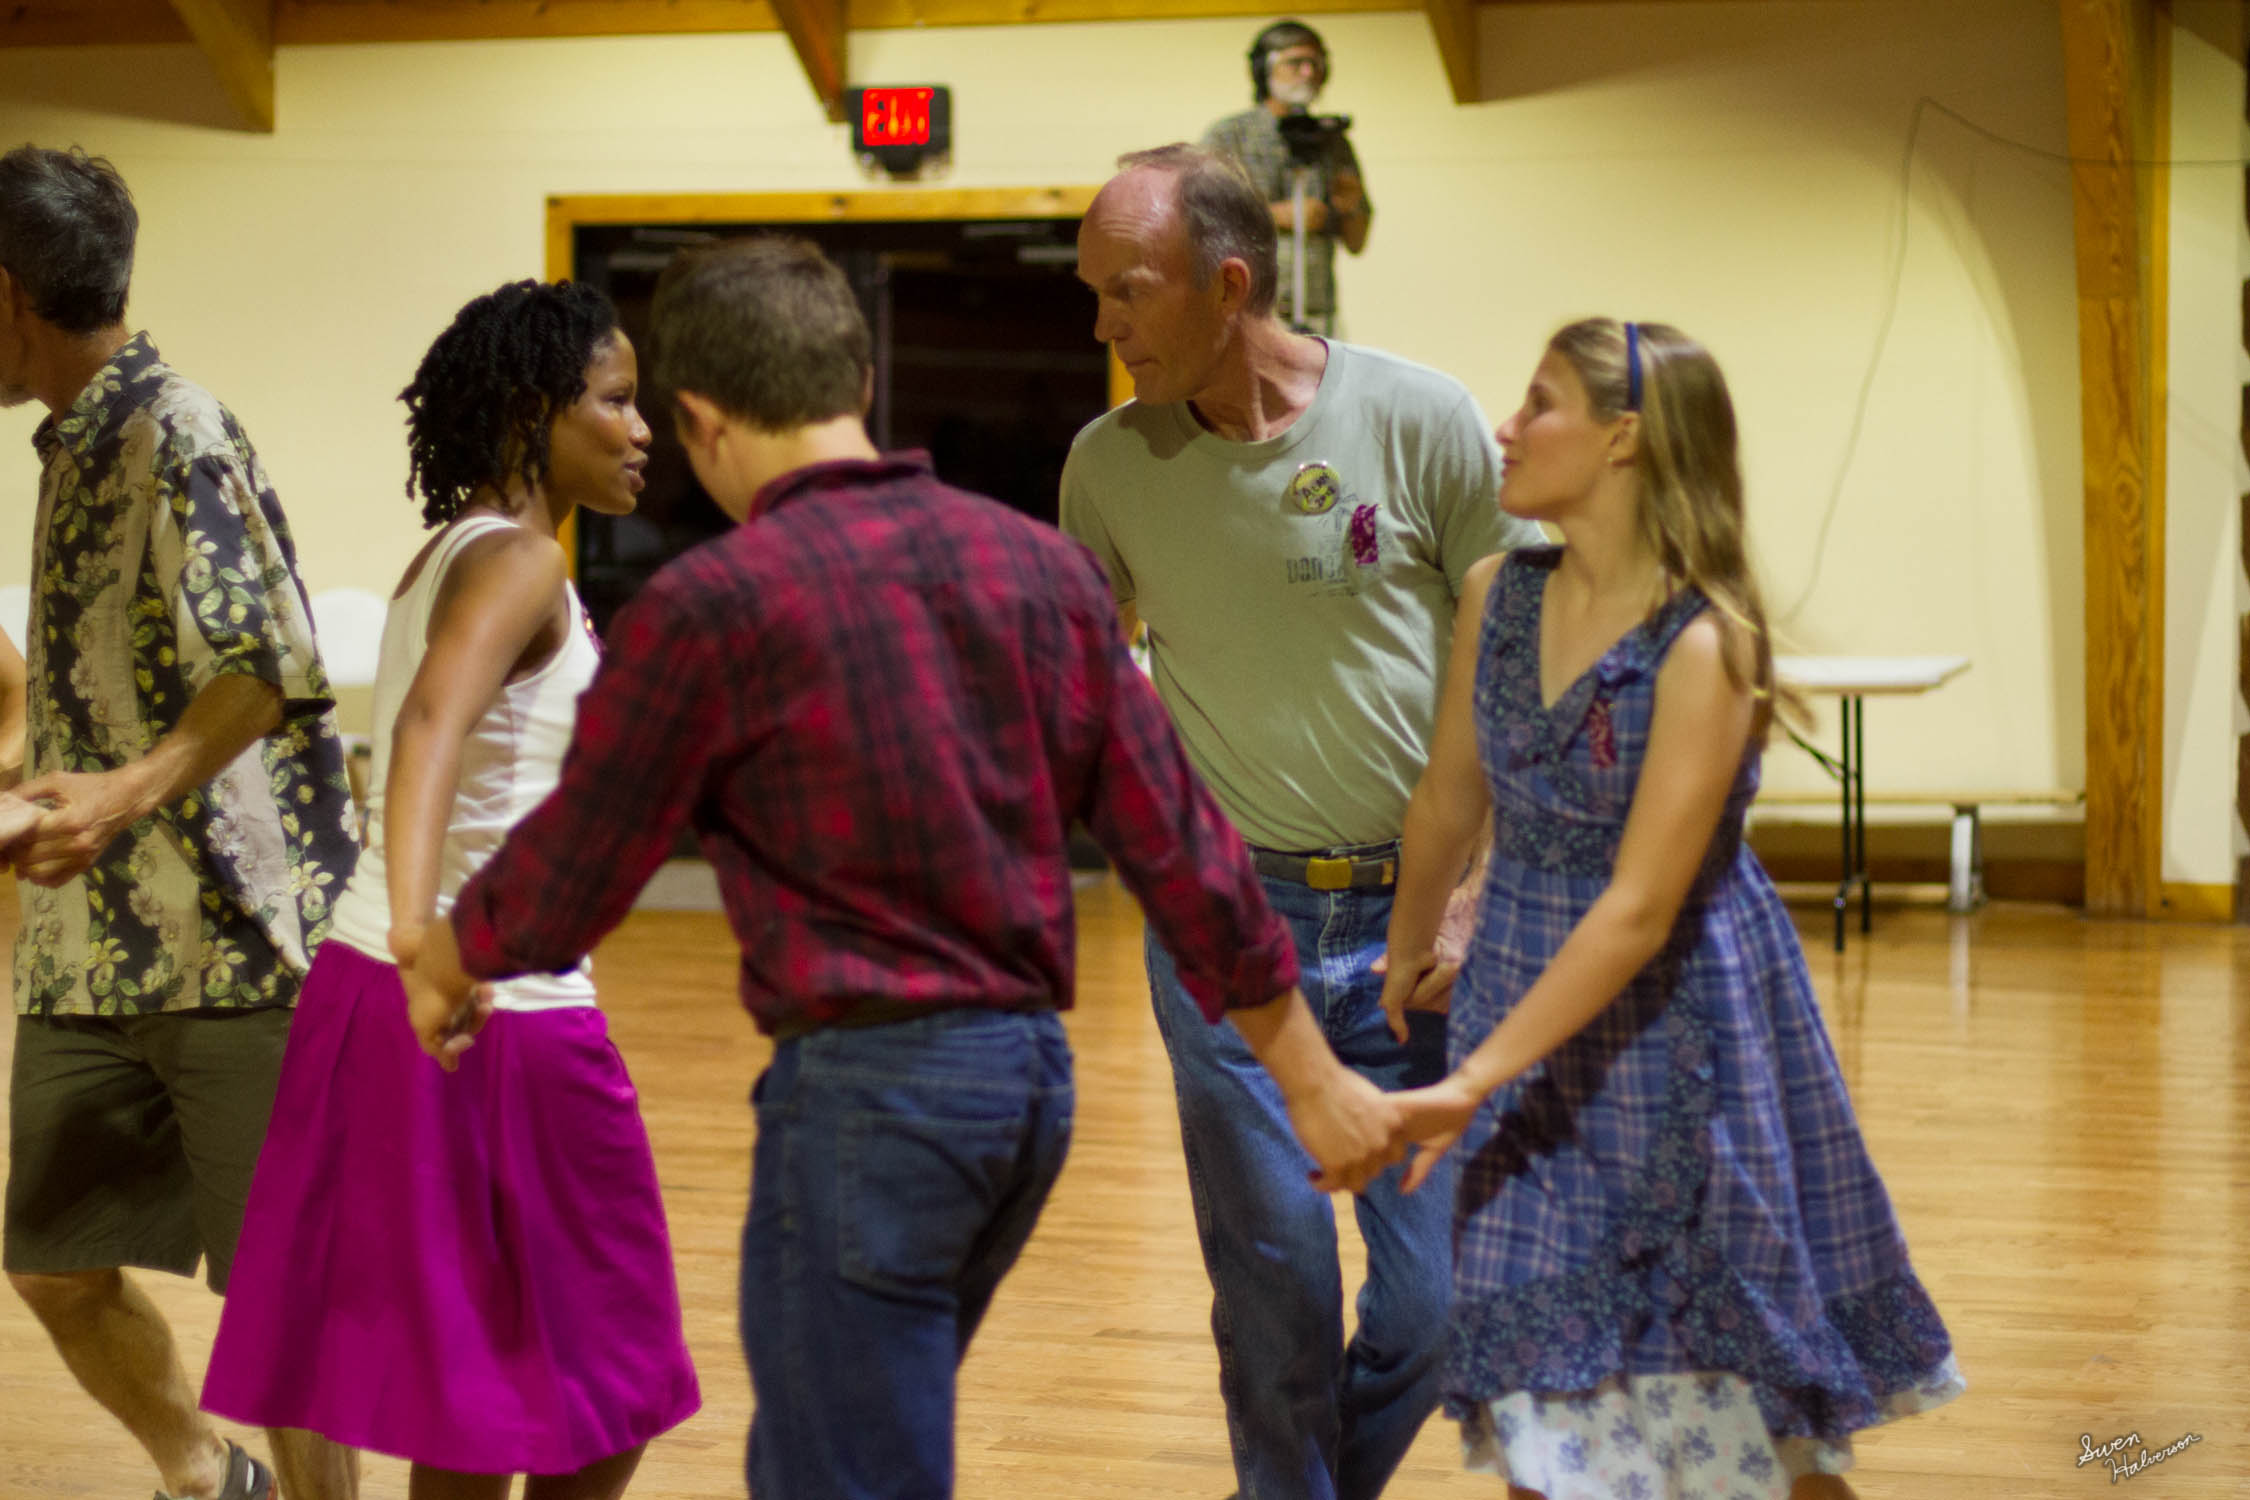 Contra dancing in Berea-022.jpg